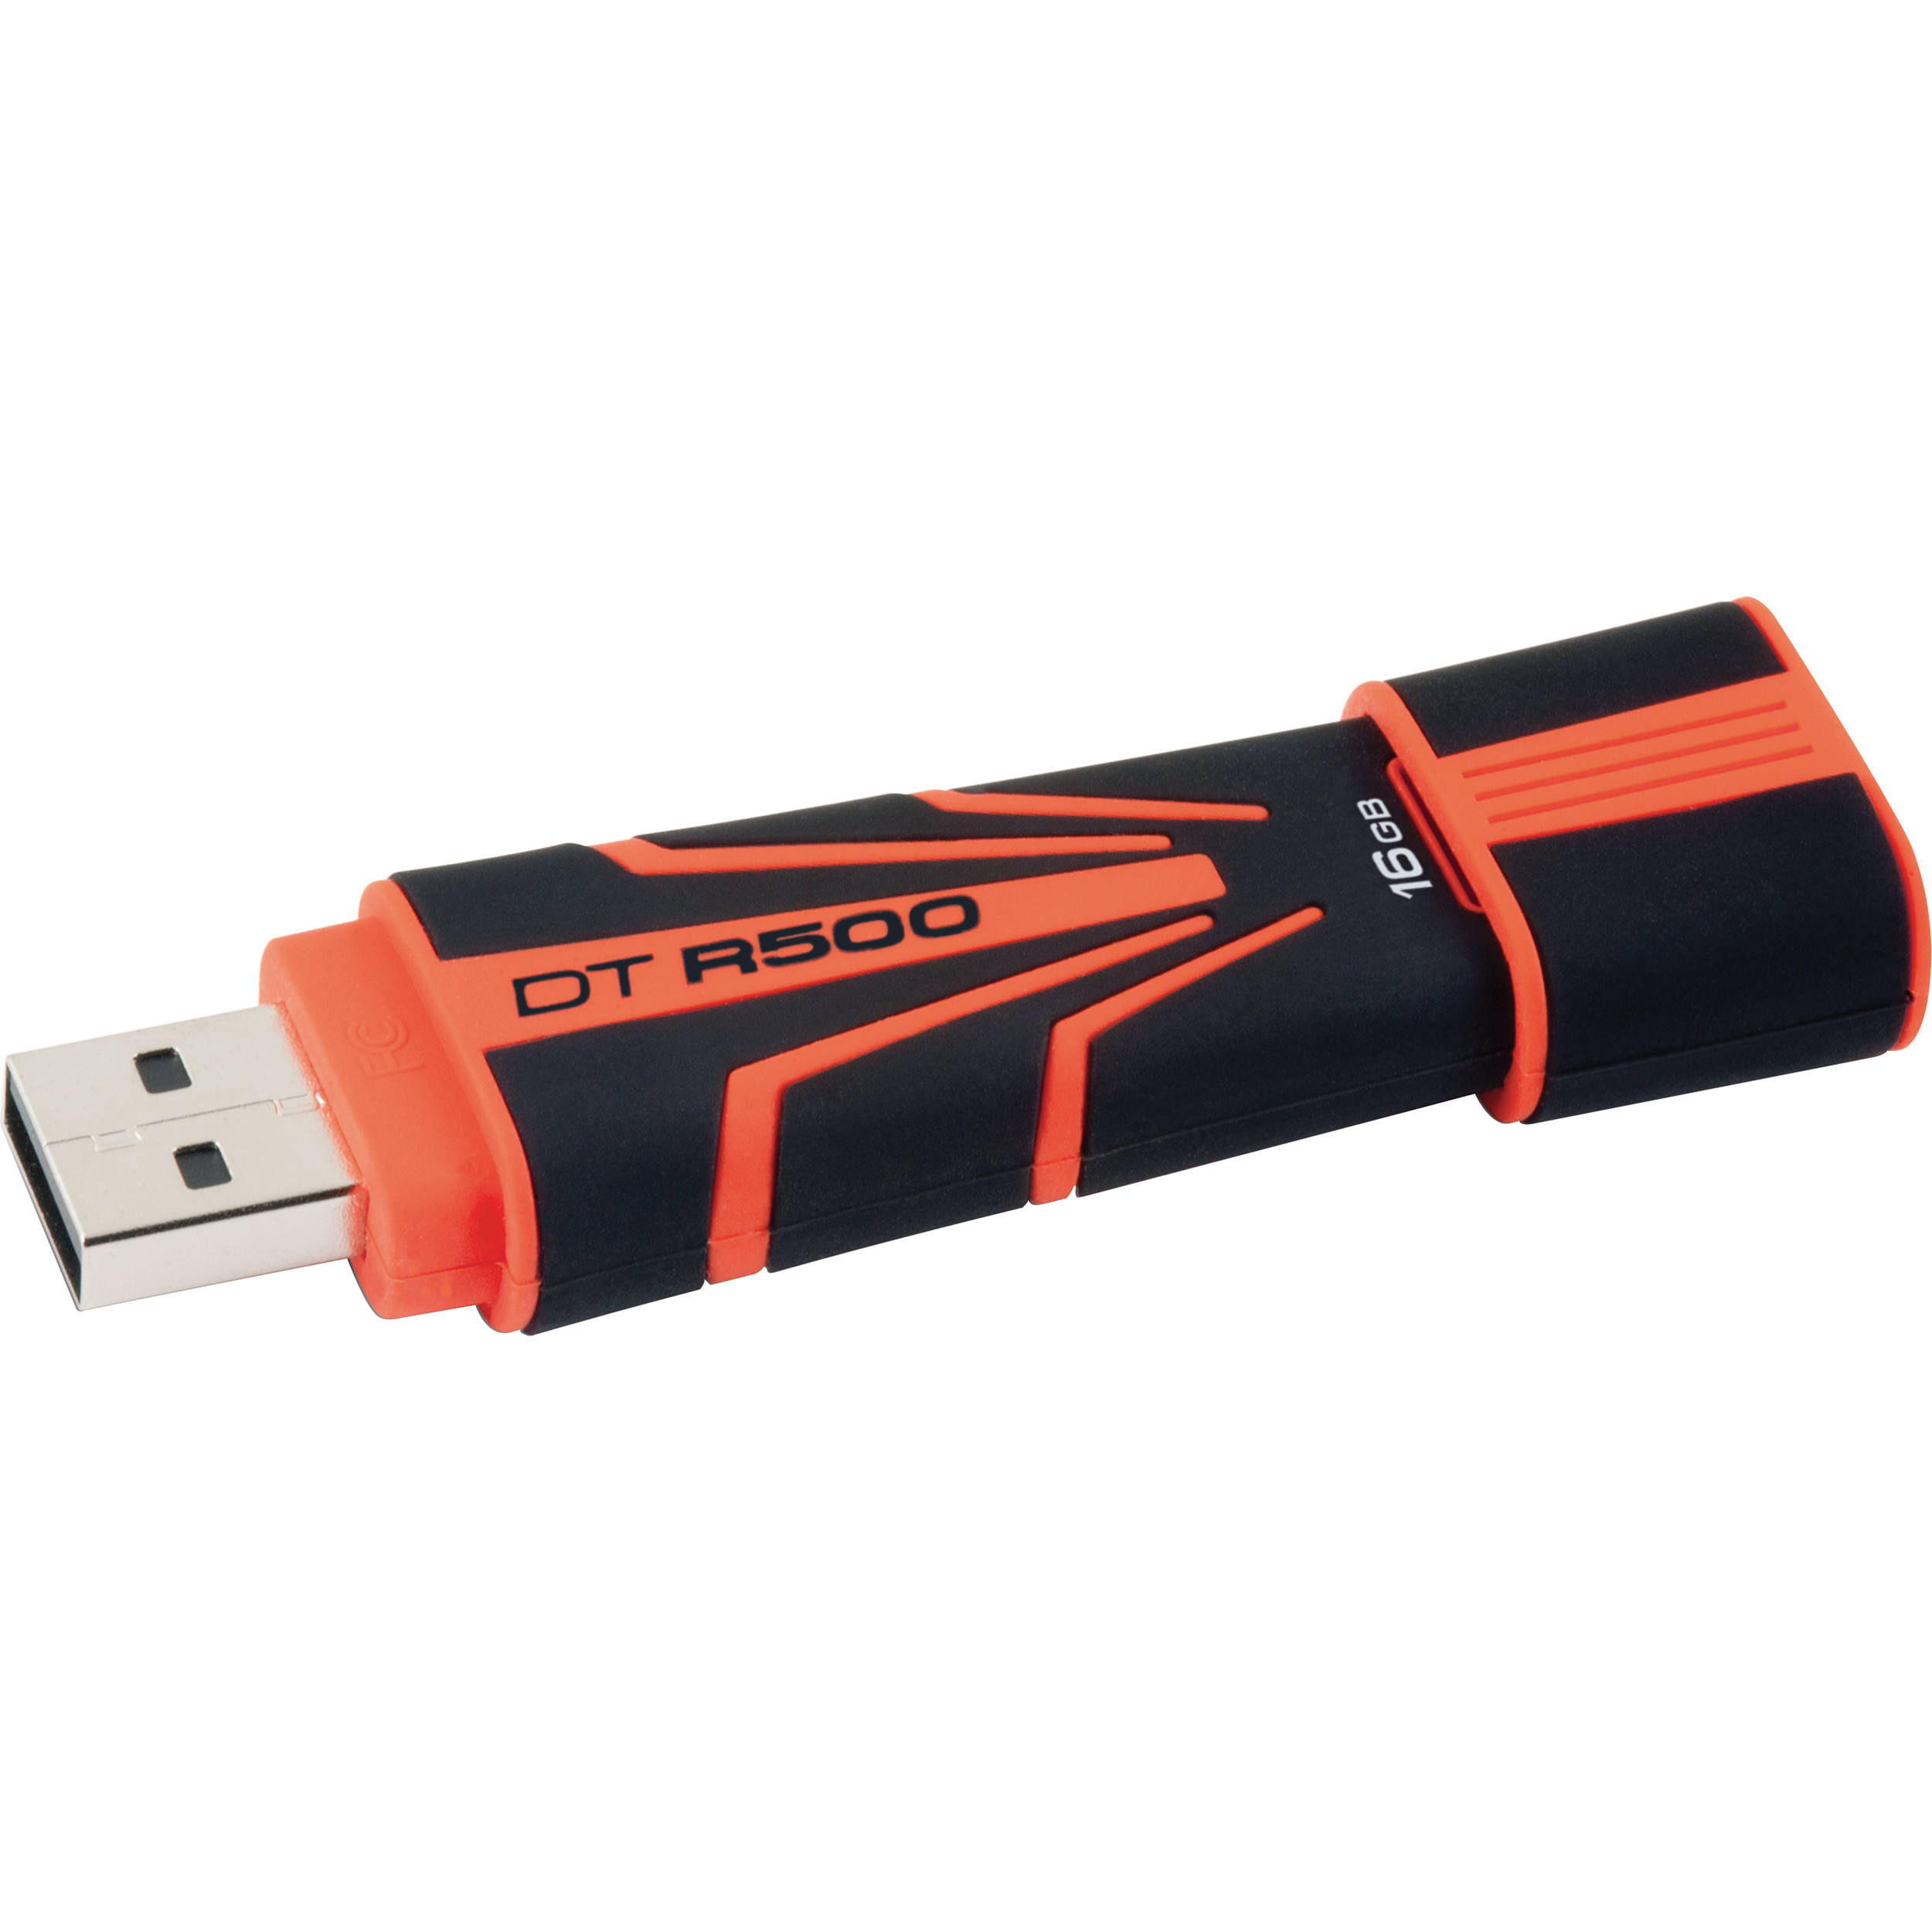 how to format a kingston flash drive